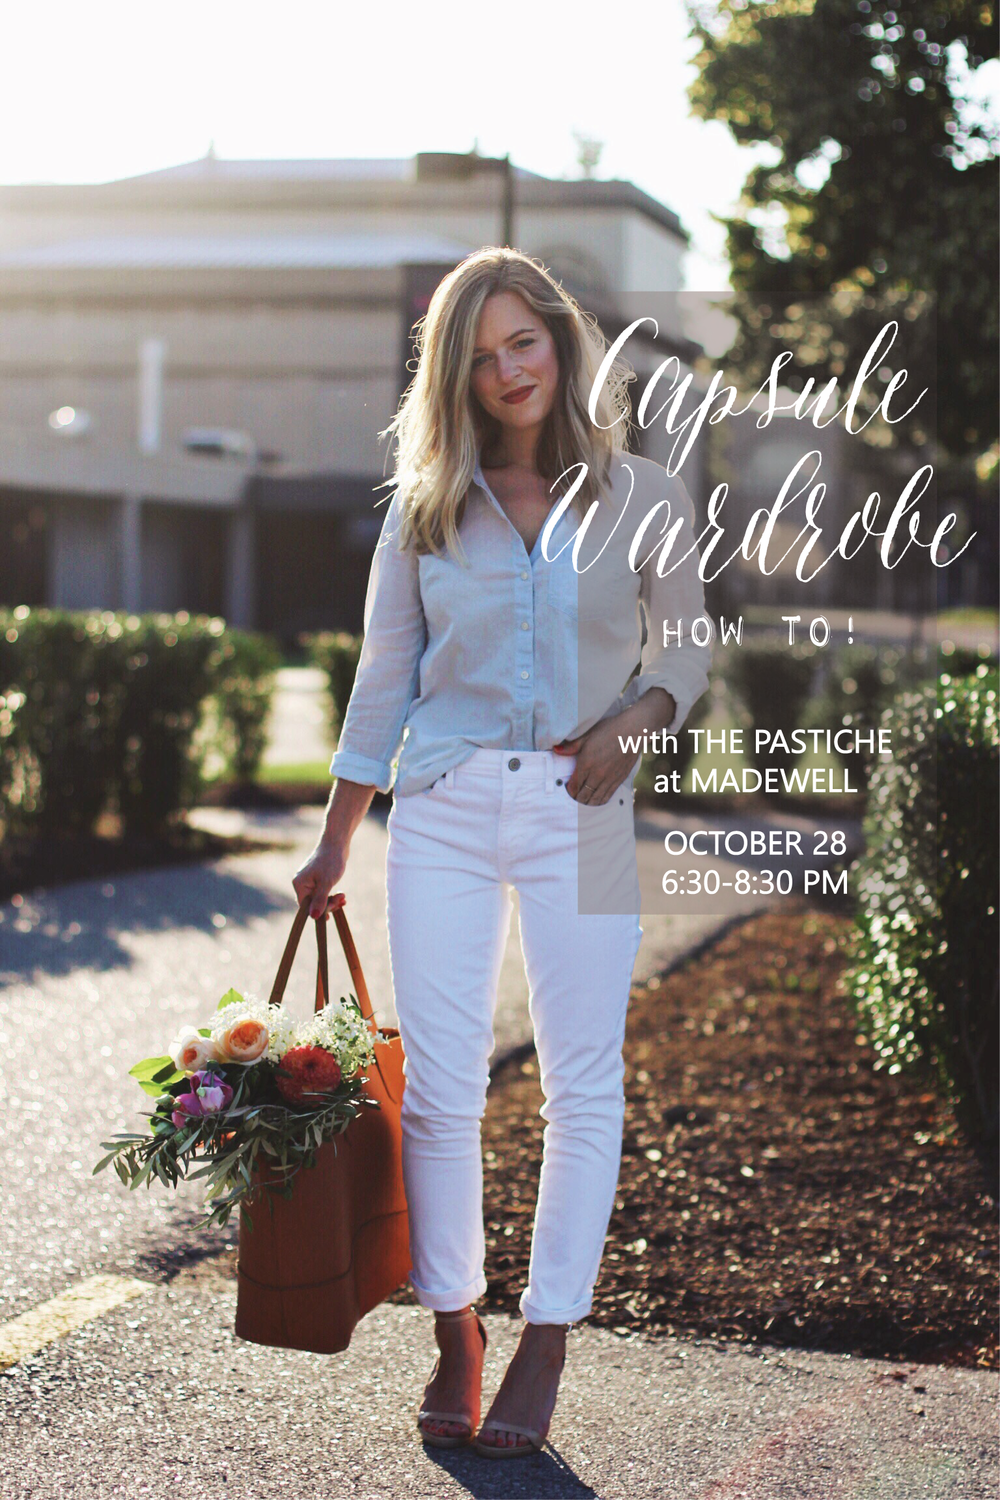 Capsule wardrobe workshop with The Pastiche at Madewell!